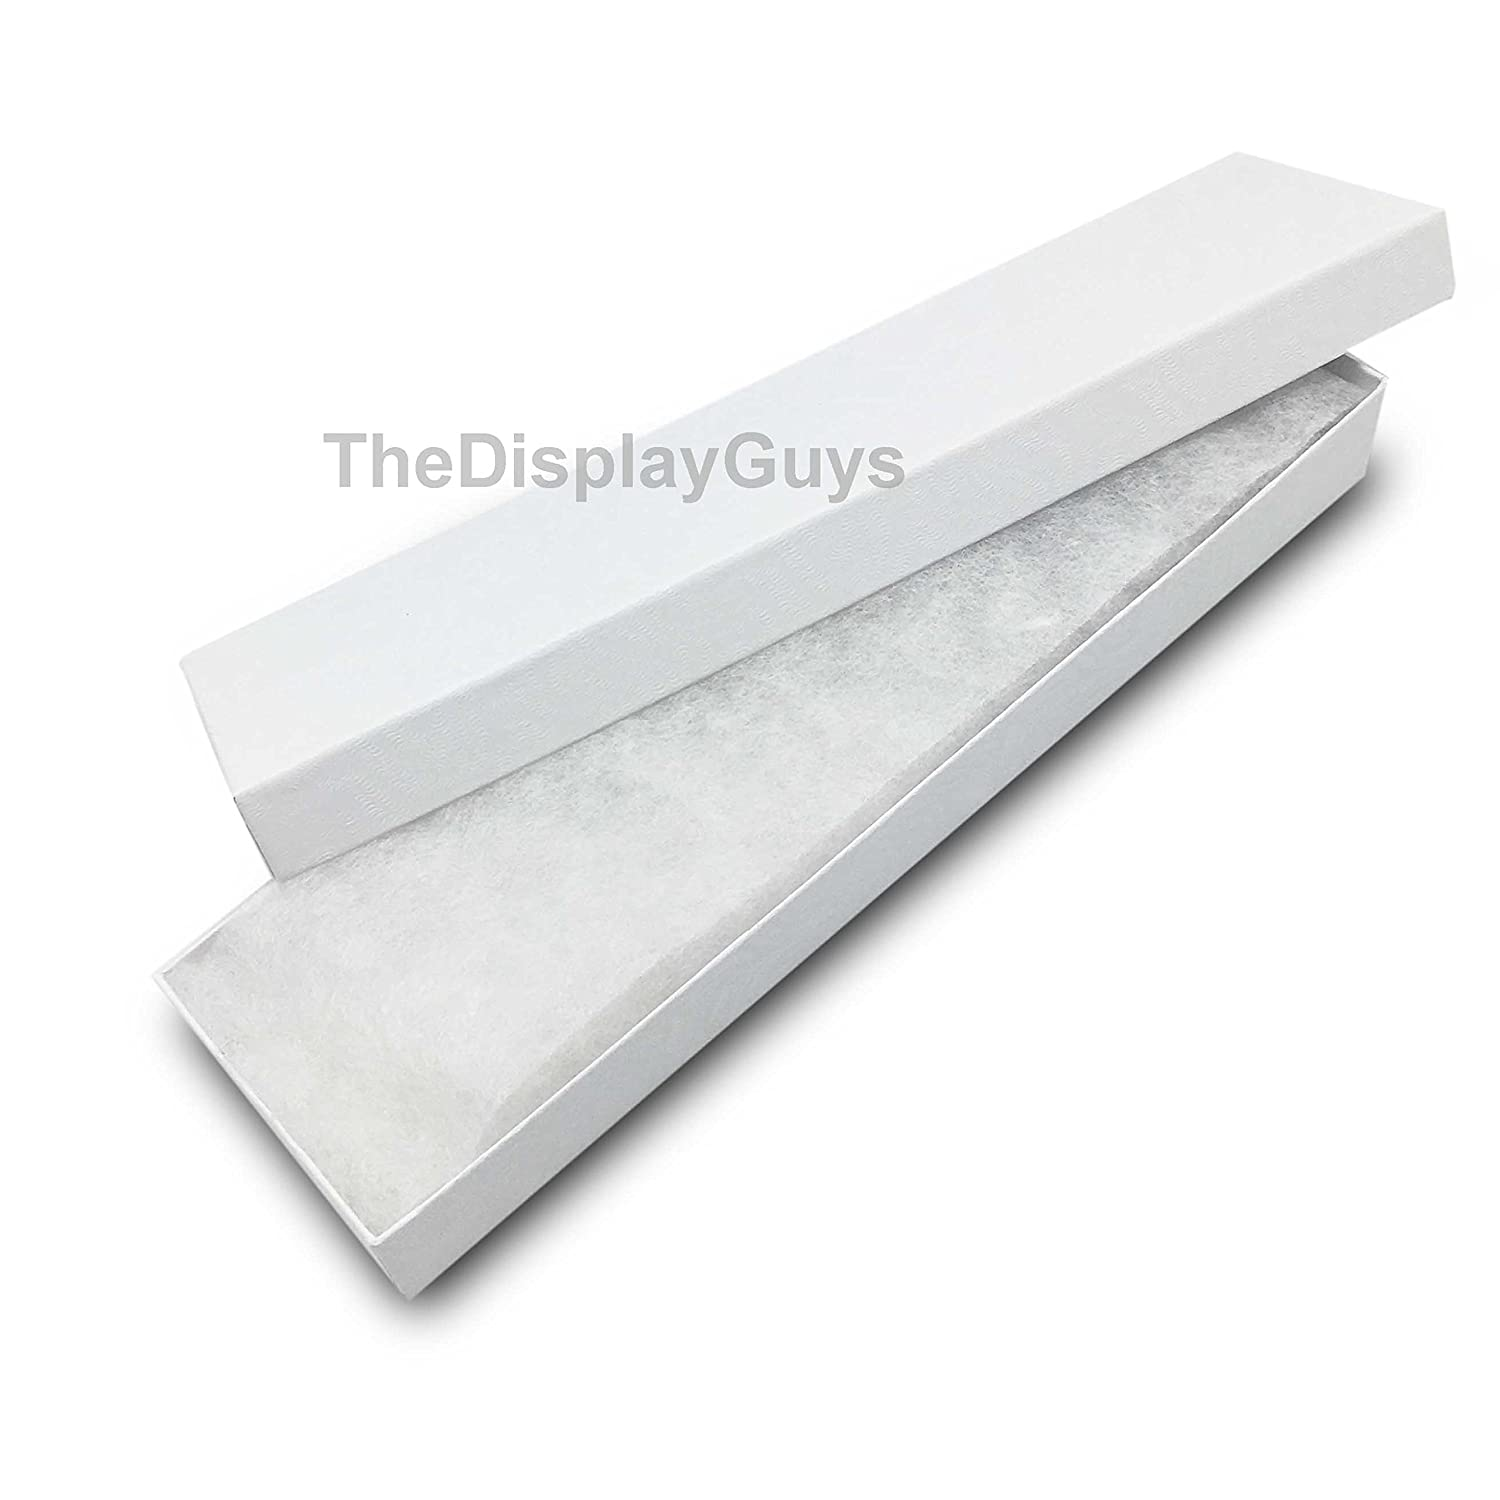 The Display Guys Pack of 25 Cotton Filled Cardboard Paper White Jewelry Box Gift Case 3 1//4x2 1//4x1 inches #32